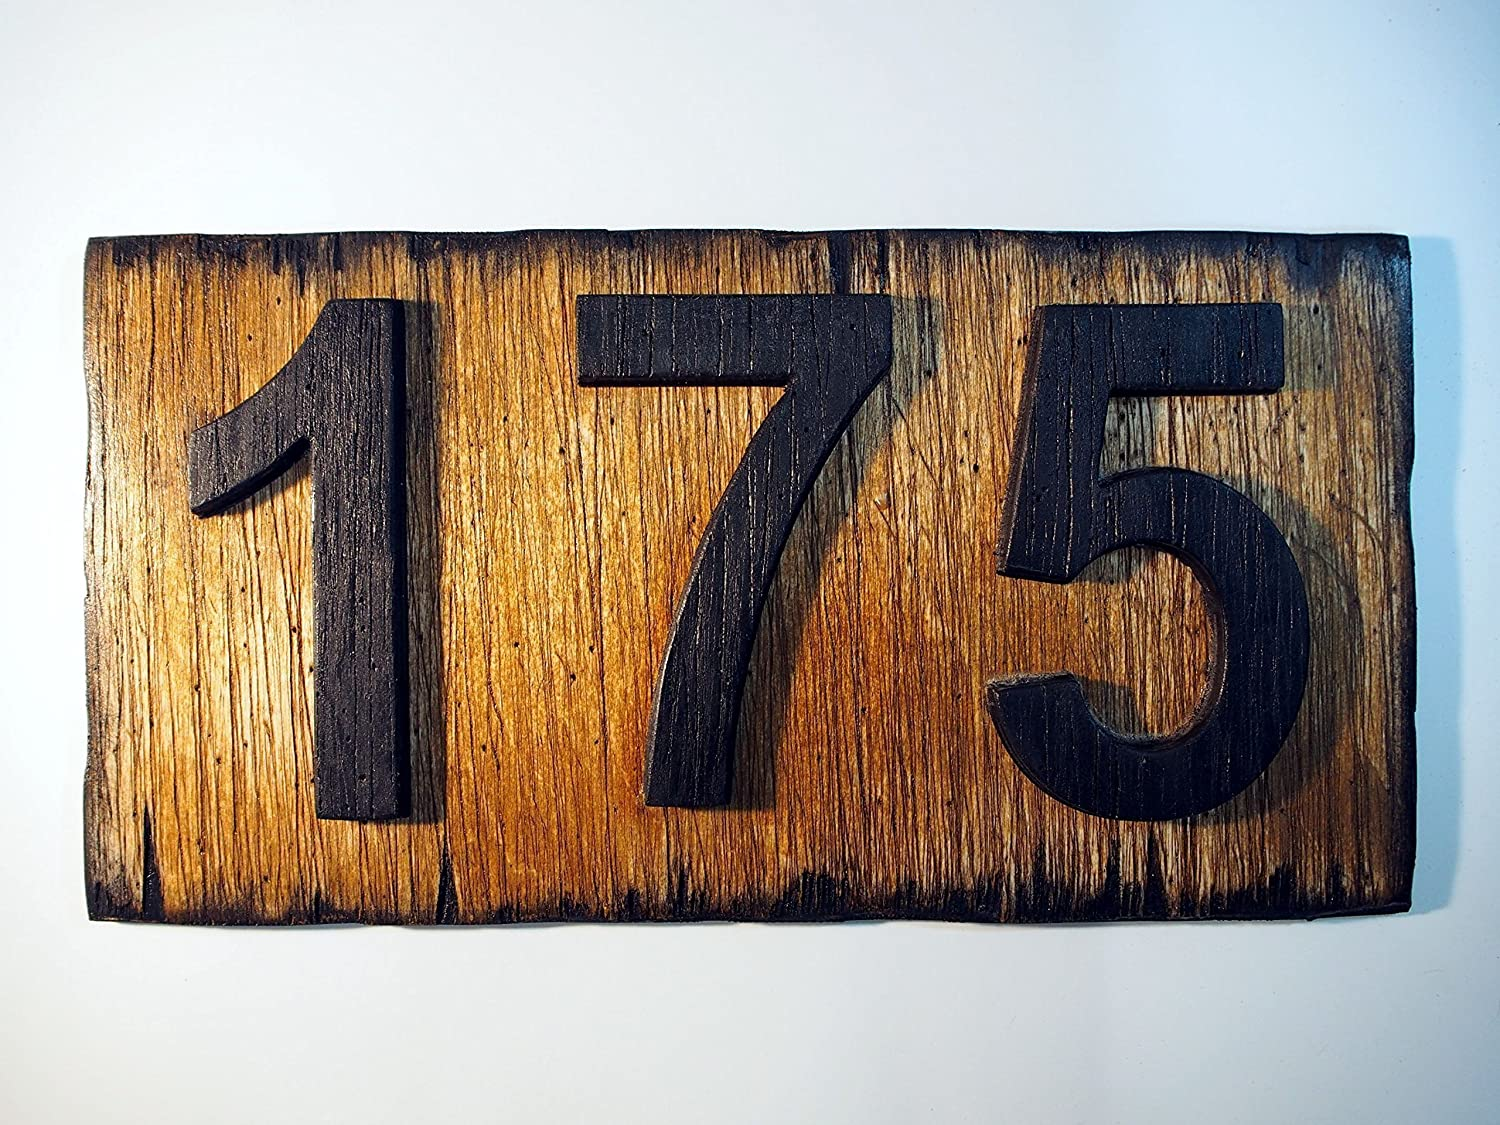 Custom Address Plaque | Rustic House Address Signs | Made of distressed Wood | House numbers, address sign, cabin, cottage, housewarming gift